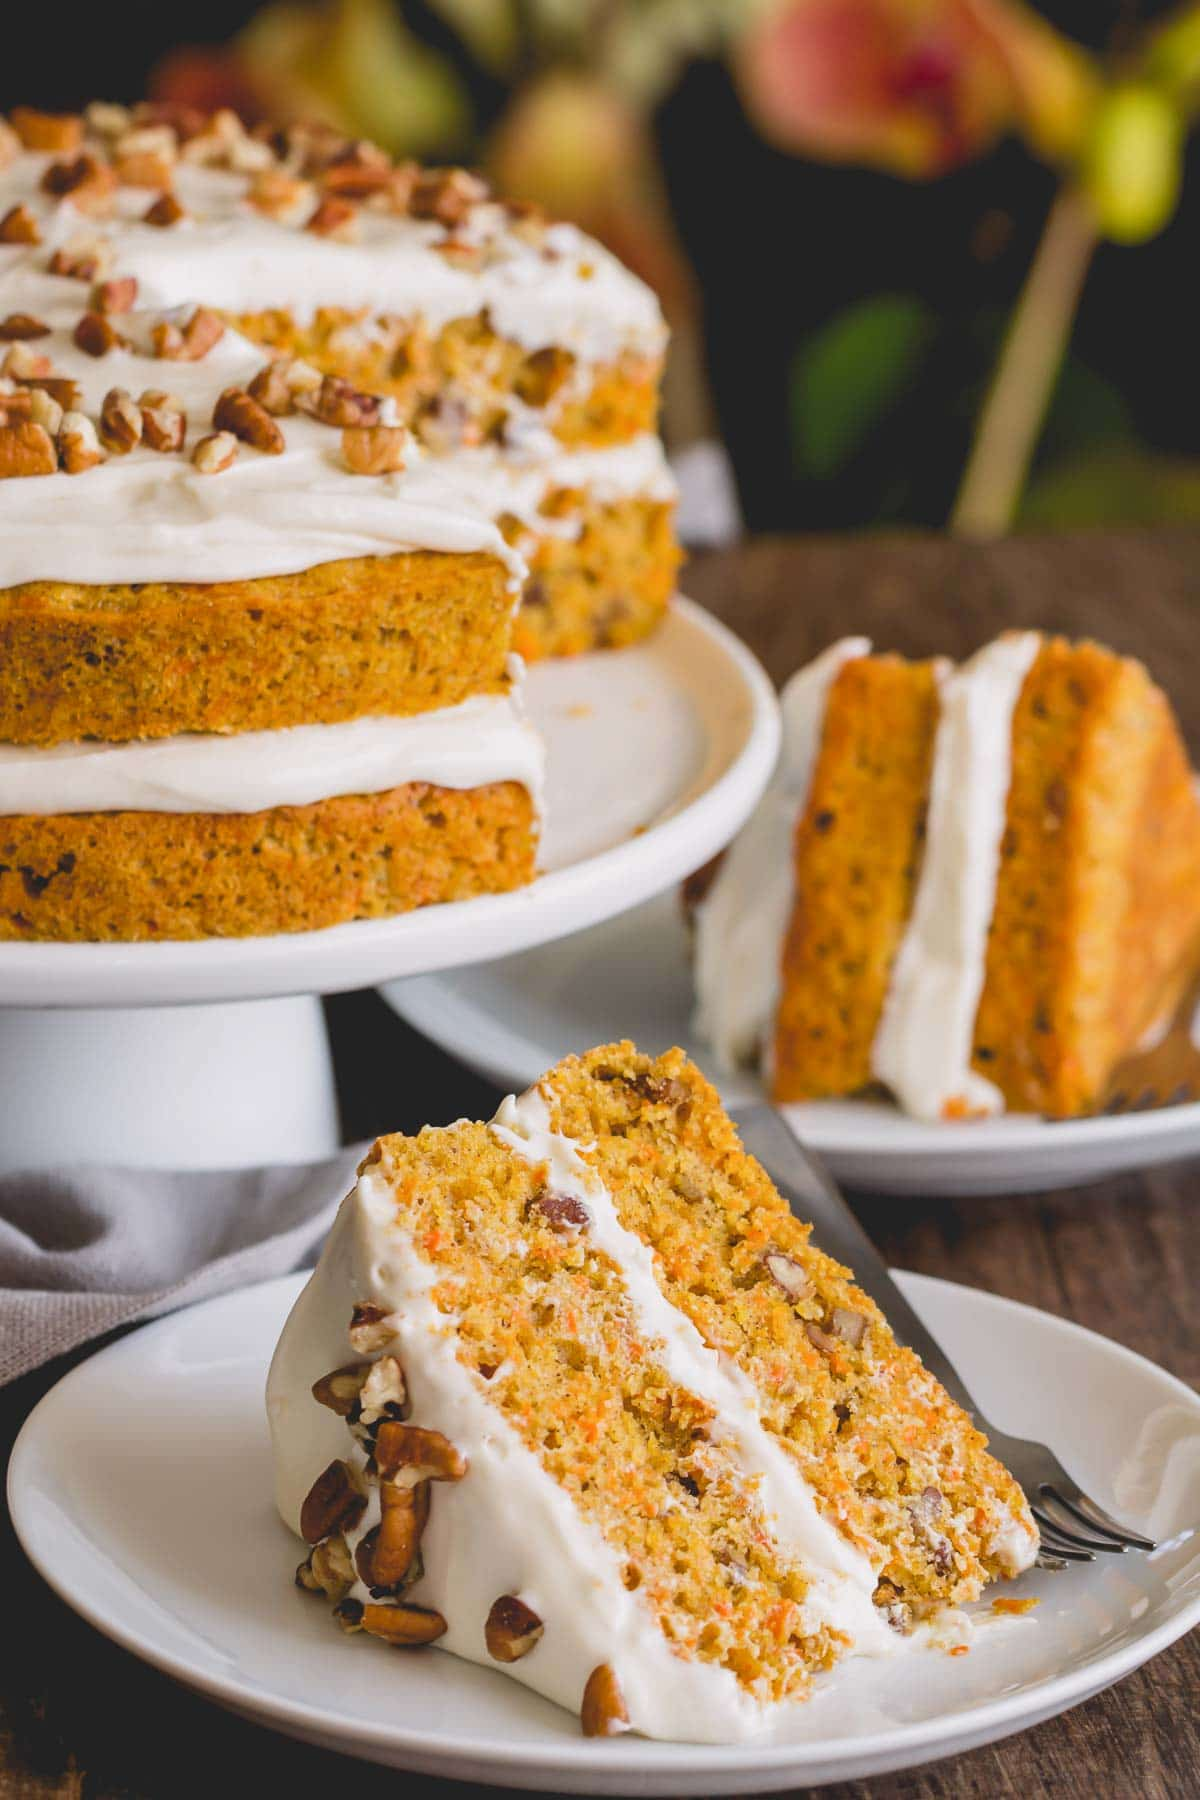 Slice of carrot cake on a white plate.